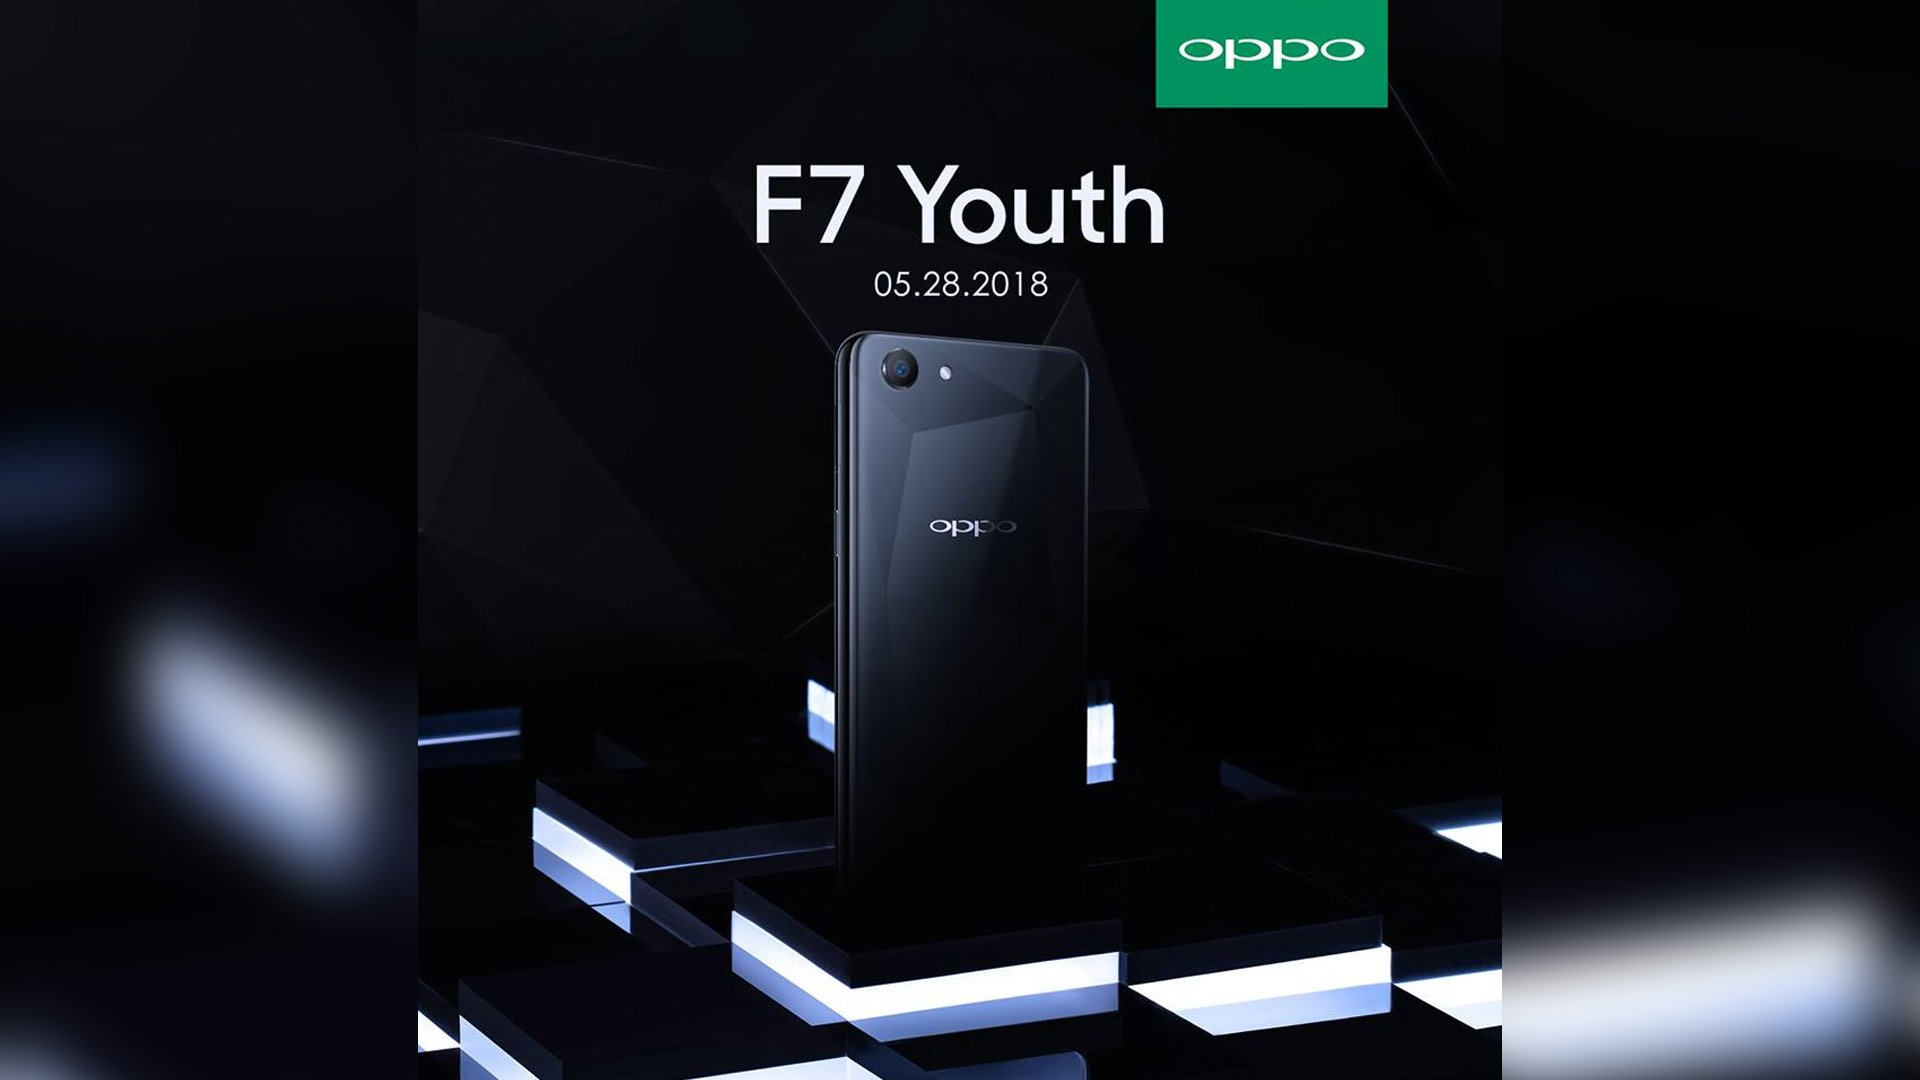 OPPO-F7-Youth launched